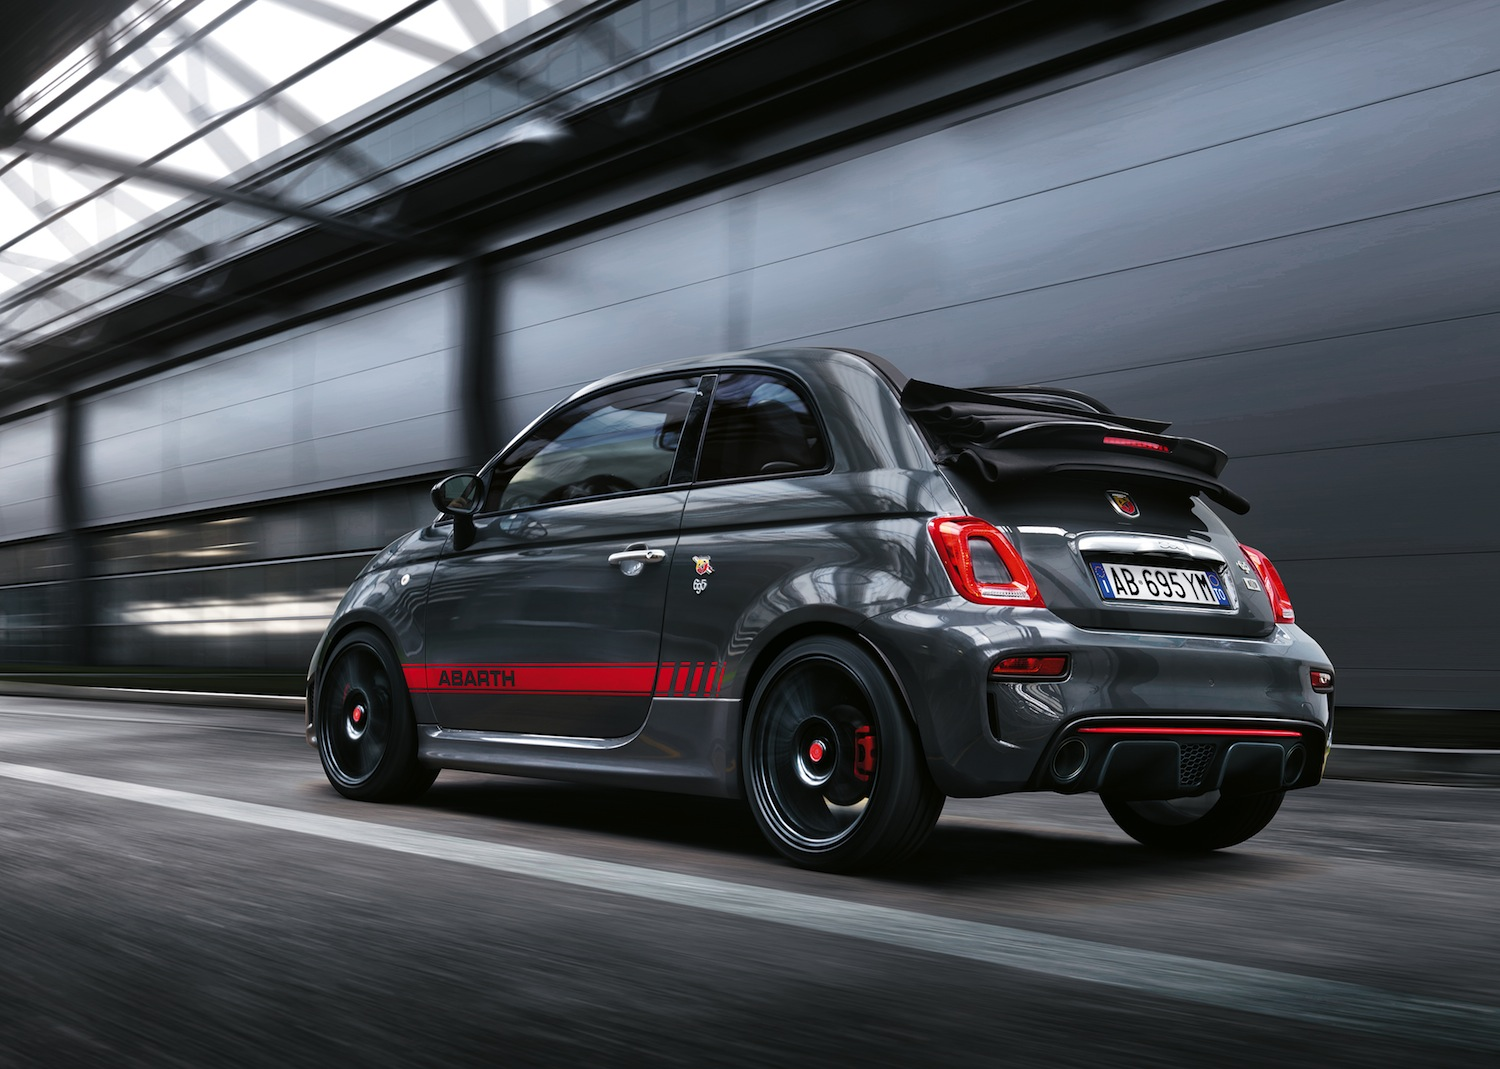 abarth-695-XSR-Yamaha-Limited-Edition-3